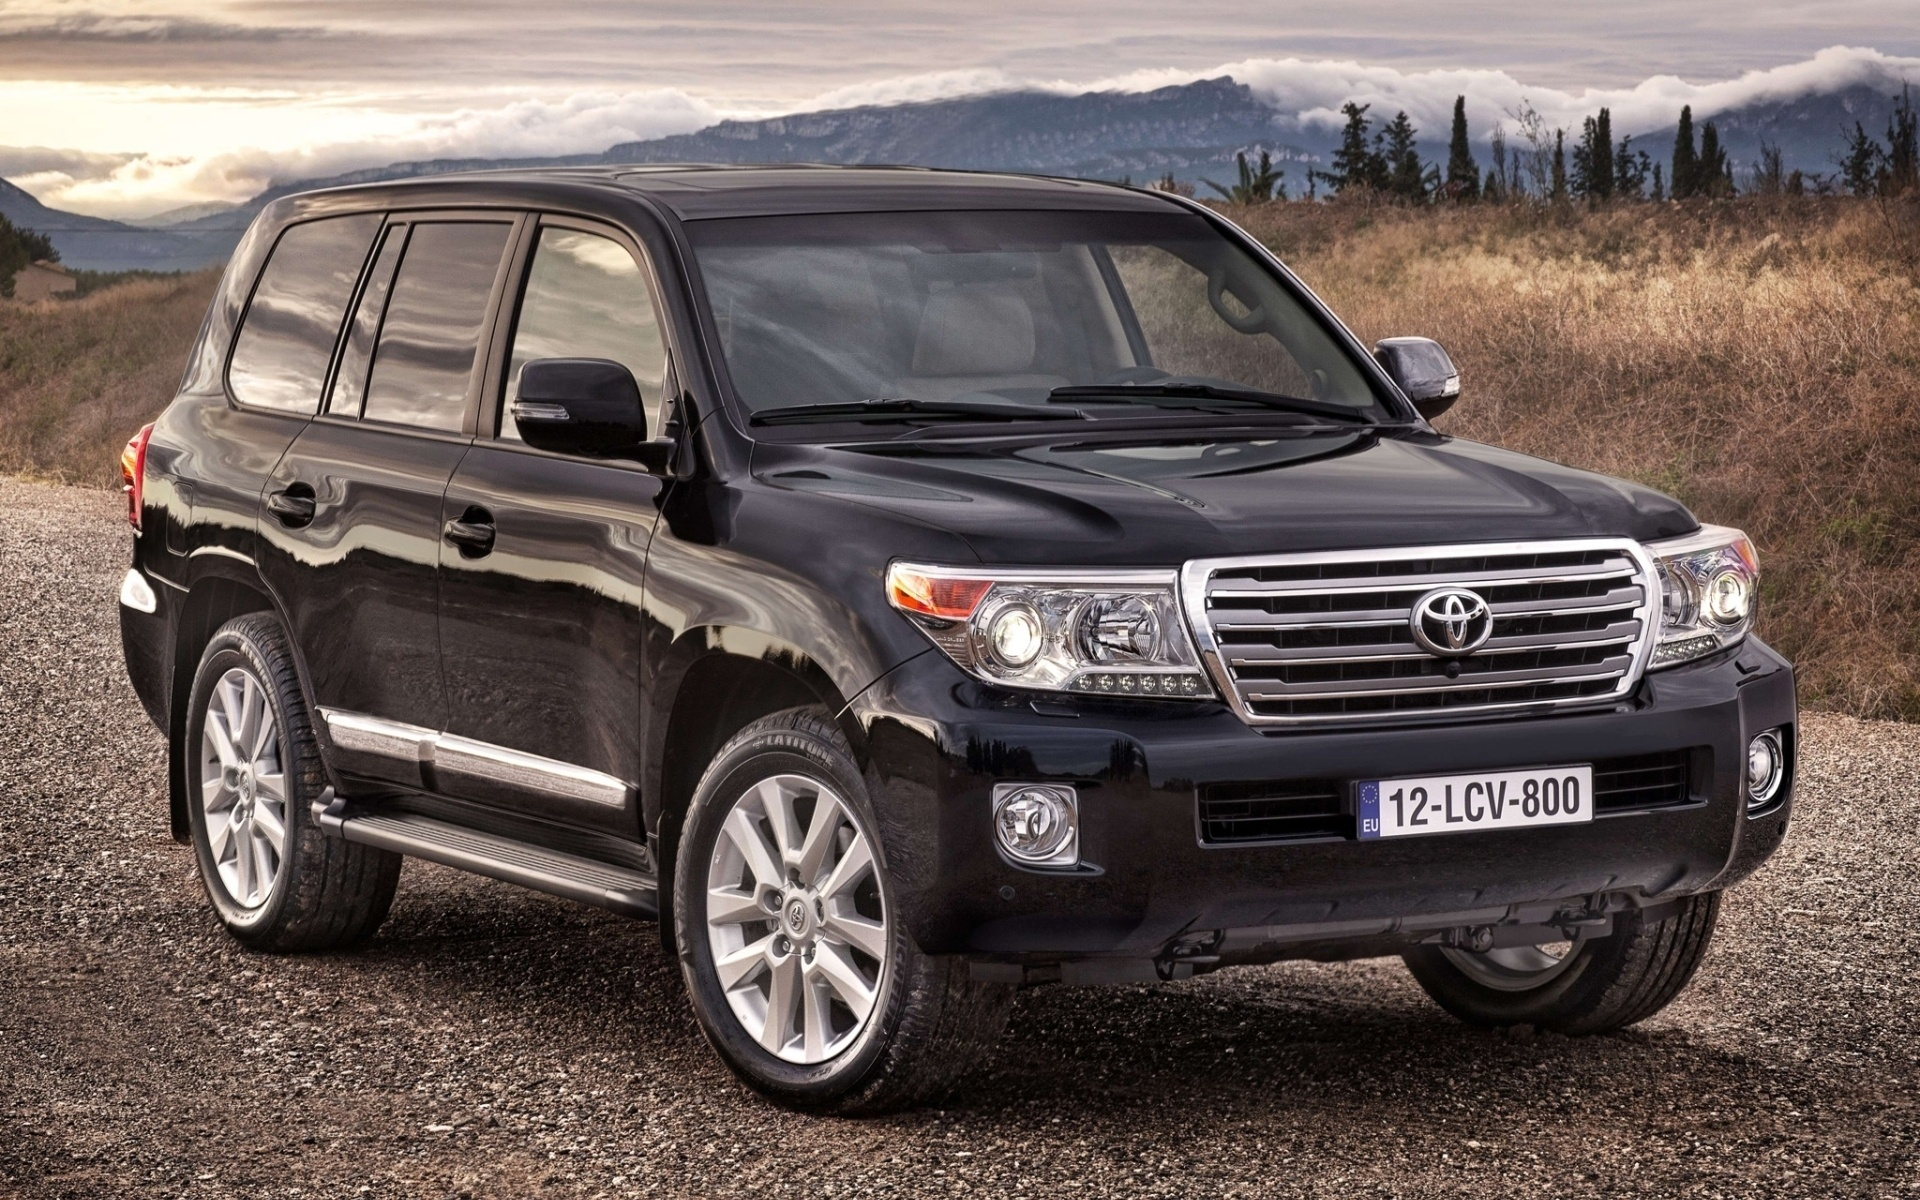 7 местные автомобили Toyota Land Cruiser 200